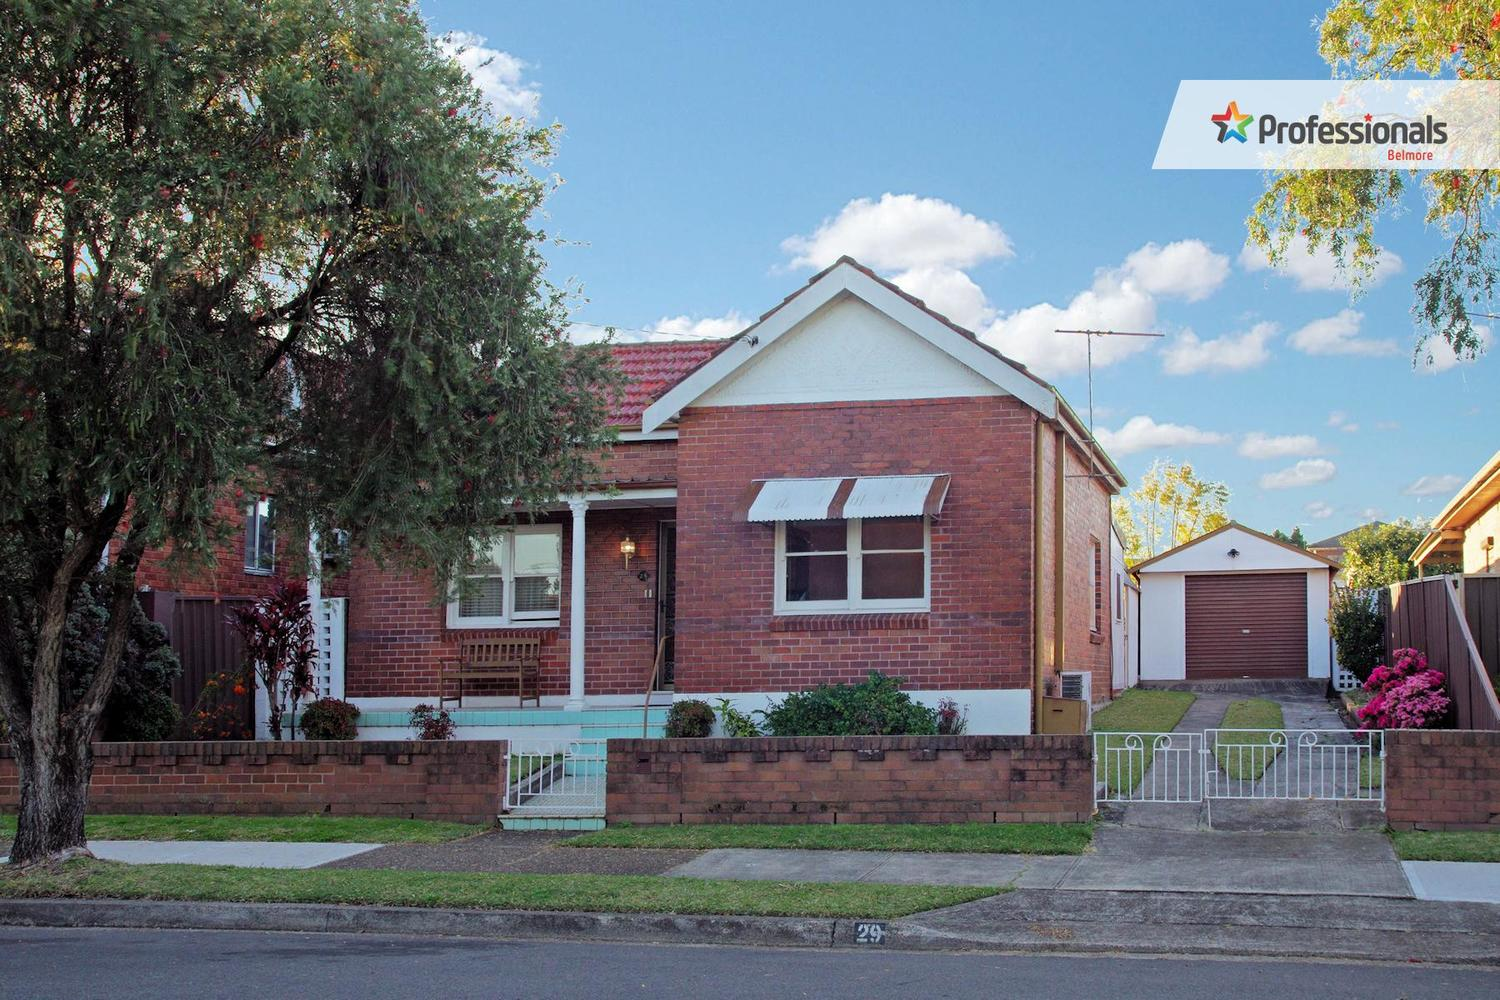 29 Kennedy Avenue, Belmore NSW 2192 - House for Sale | Allhomes